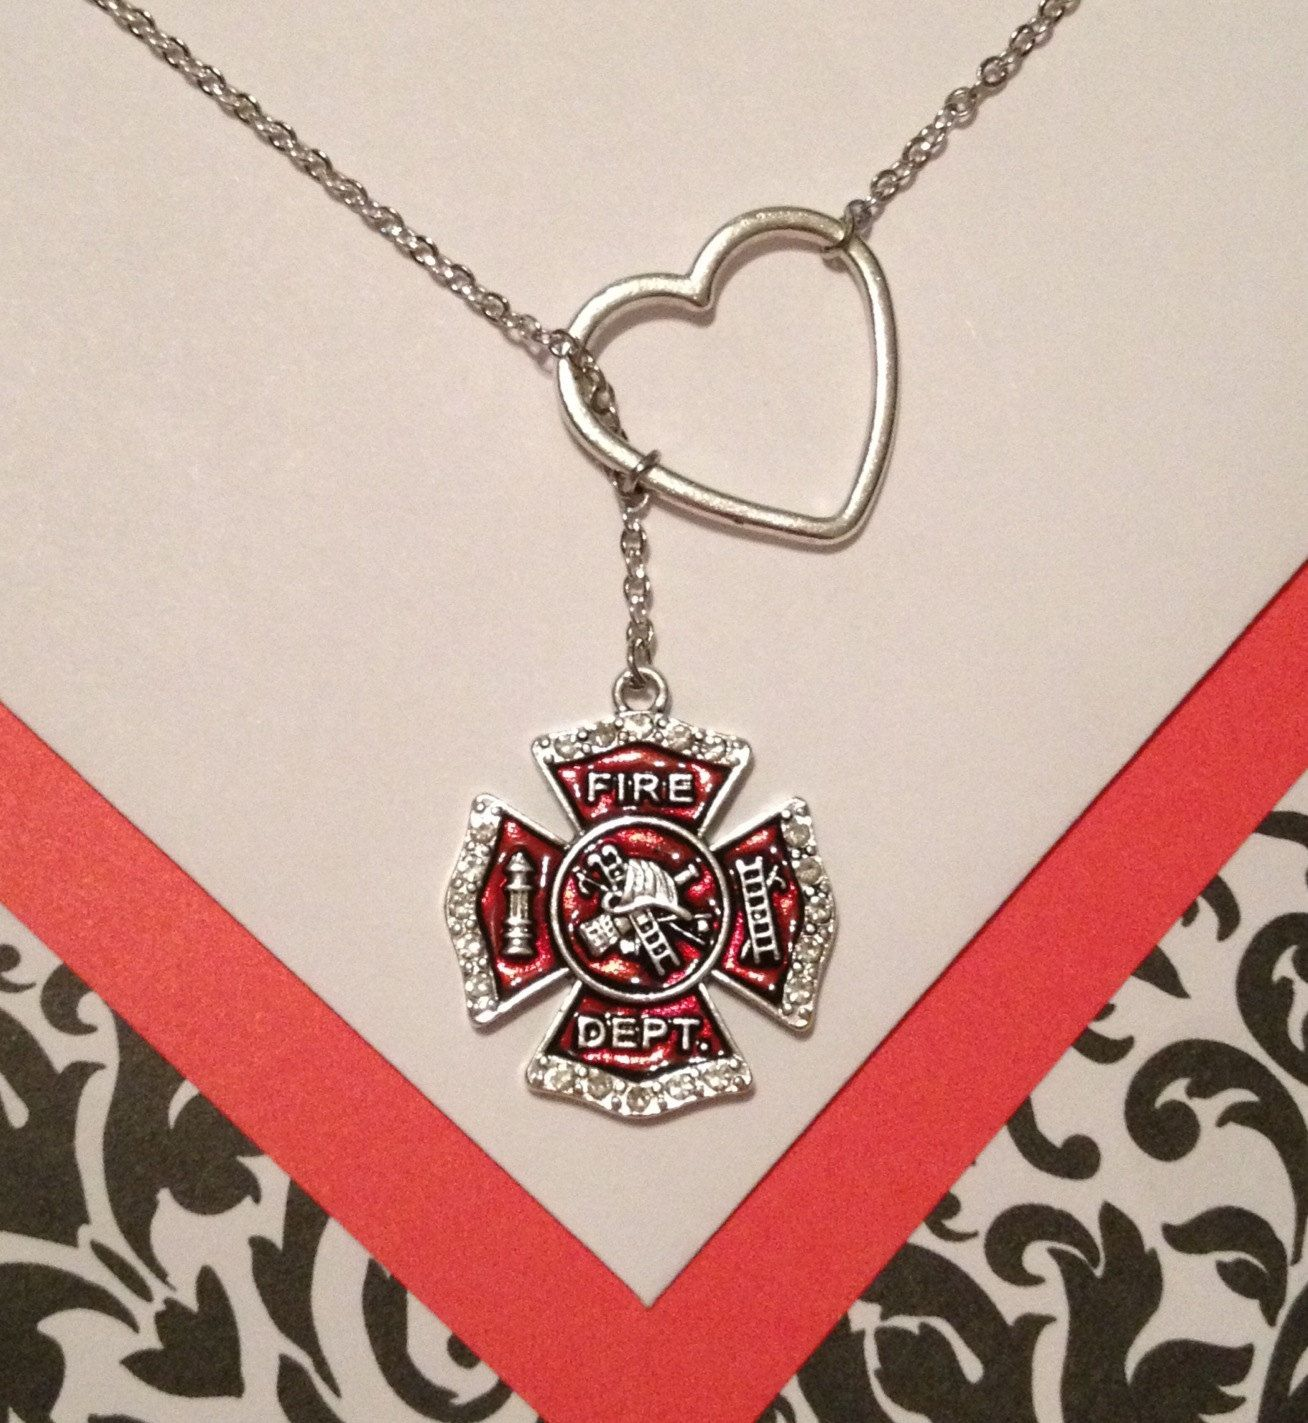 babb firefighter emblem pendant cross shineon products maltese